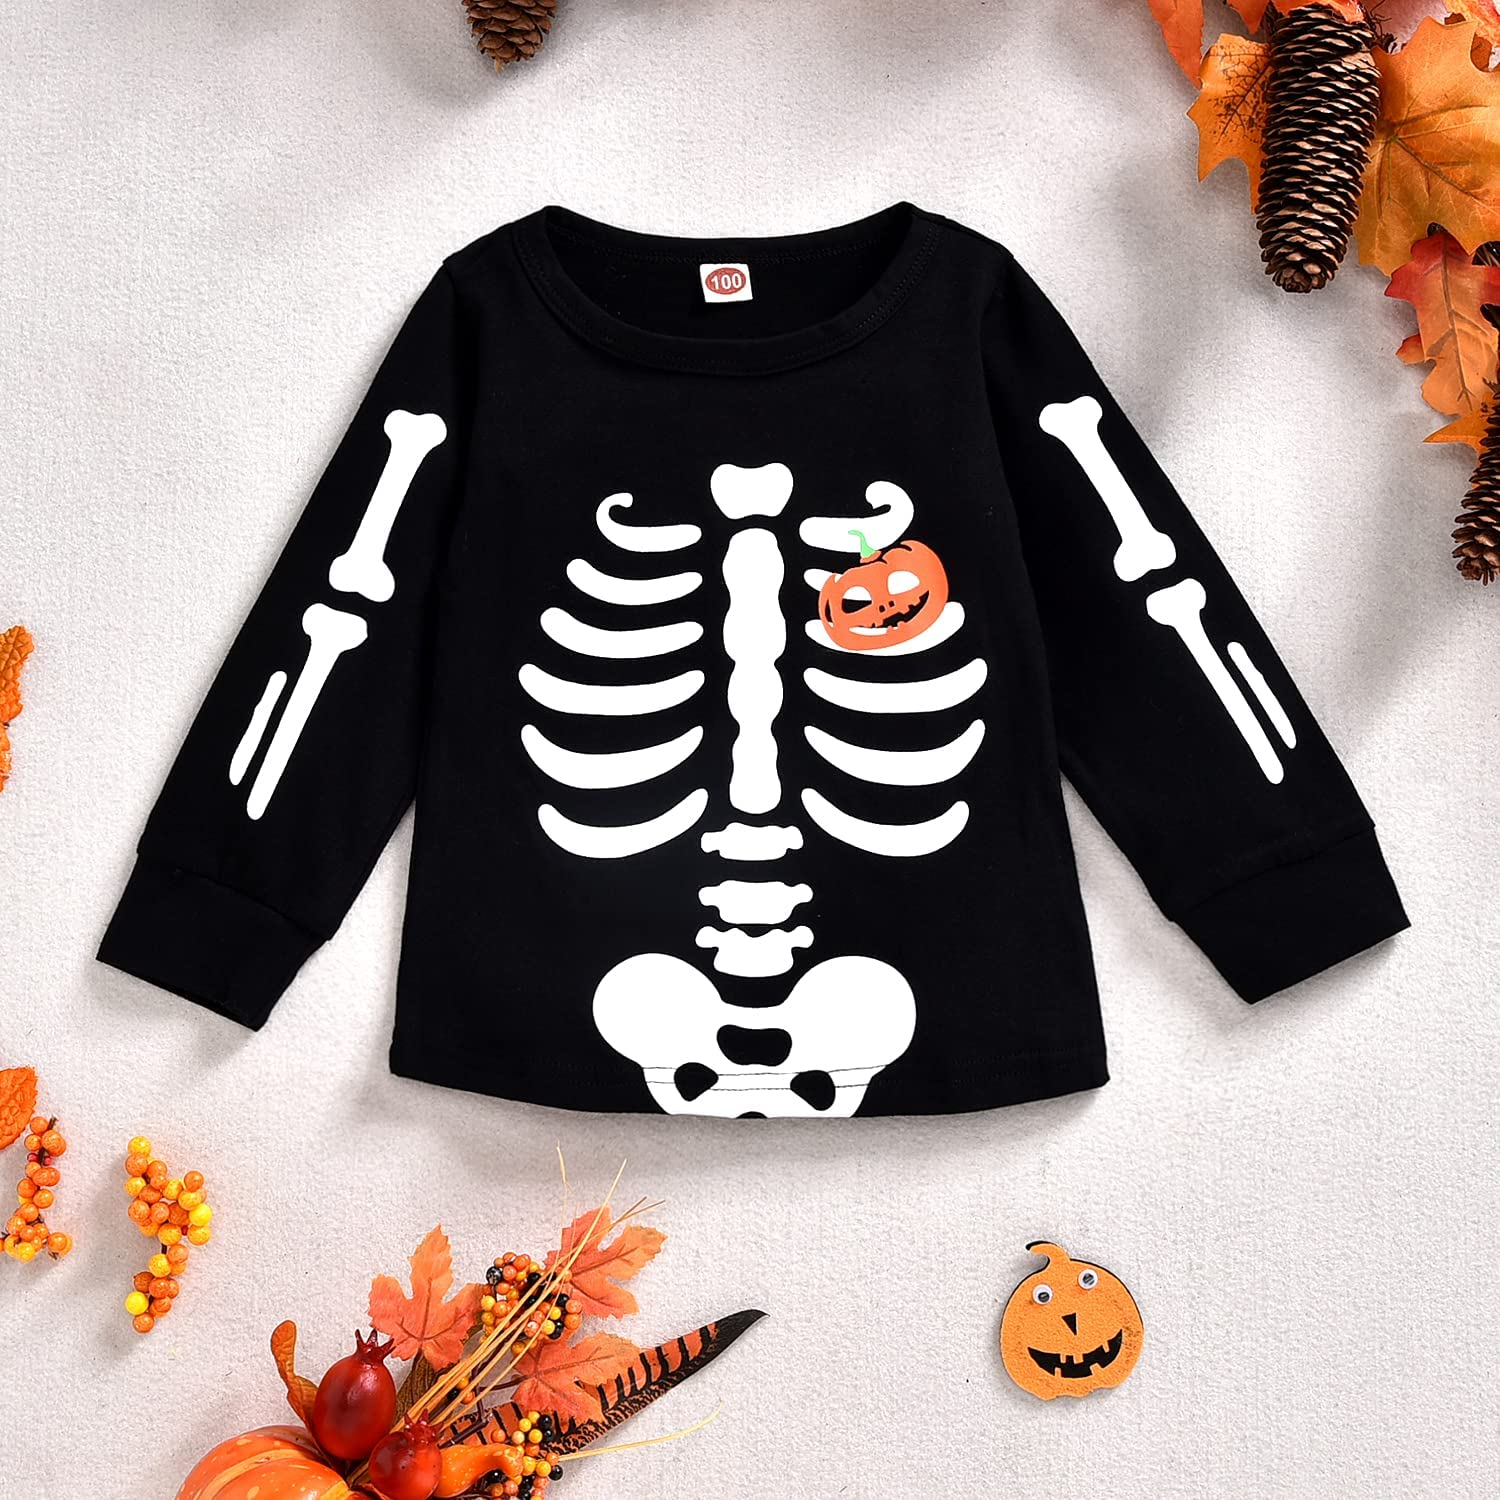 Infant Baby Boys Girls Halloween Romper Jumpsuit Onesies Toddler Shirt Pants Clothes Set Brother Sister Matching Outfits